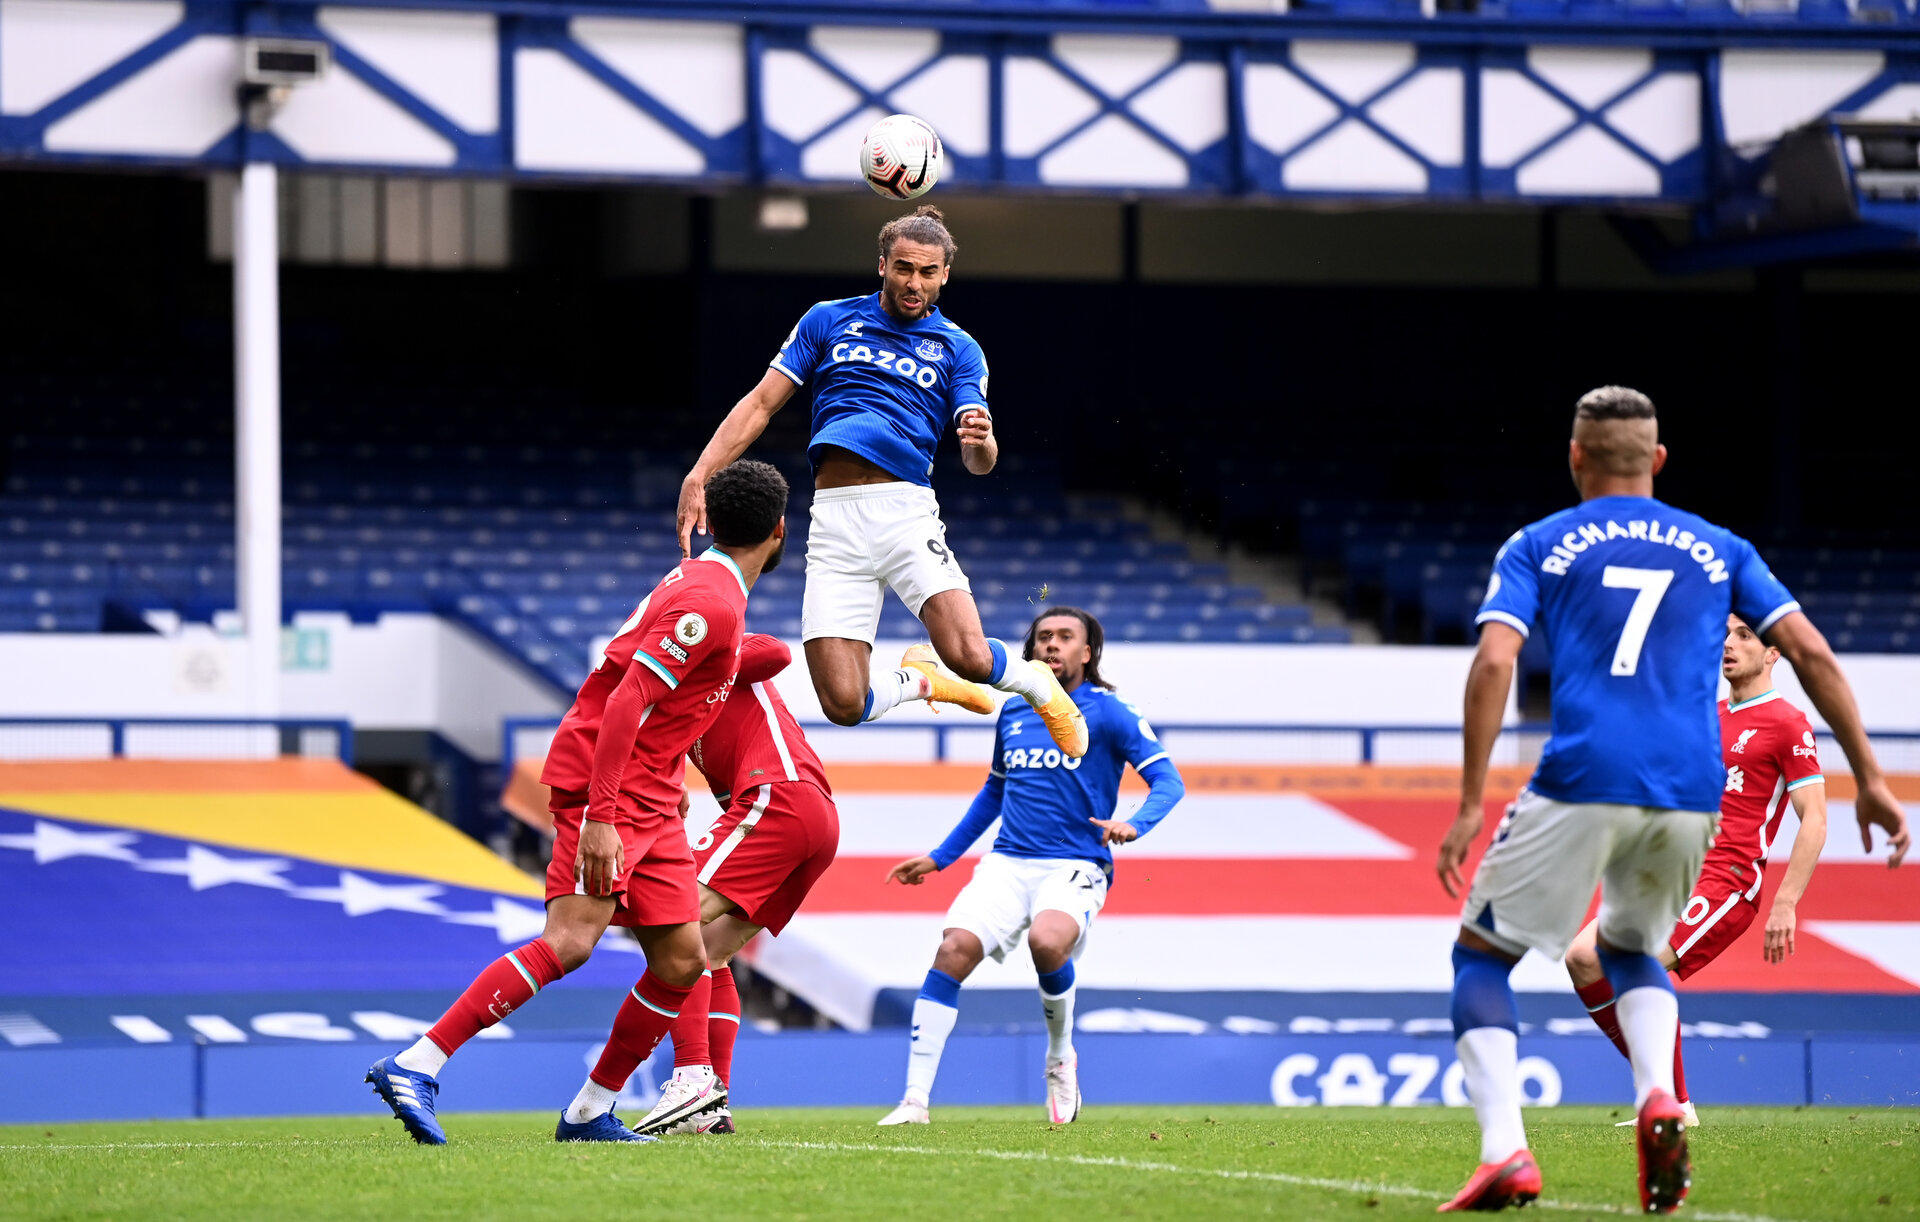 LIVERPOOL, ENGLAND - OCTOBER 17: Dominic Calvert-Lewin of Everton scores his sides second goal  during the Premier League match between Everton and Liverpool at Goodison Park on October 17, 2020 in Liverpool, England. Sporting stadiums around the UK remain under strict restrictions due to the Coronavirus Pandemic as Government social distancing laws prohibit fans inside venues resulting in games being played behind closed doors. (Photo by Laurence Griffiths/Getty Images)